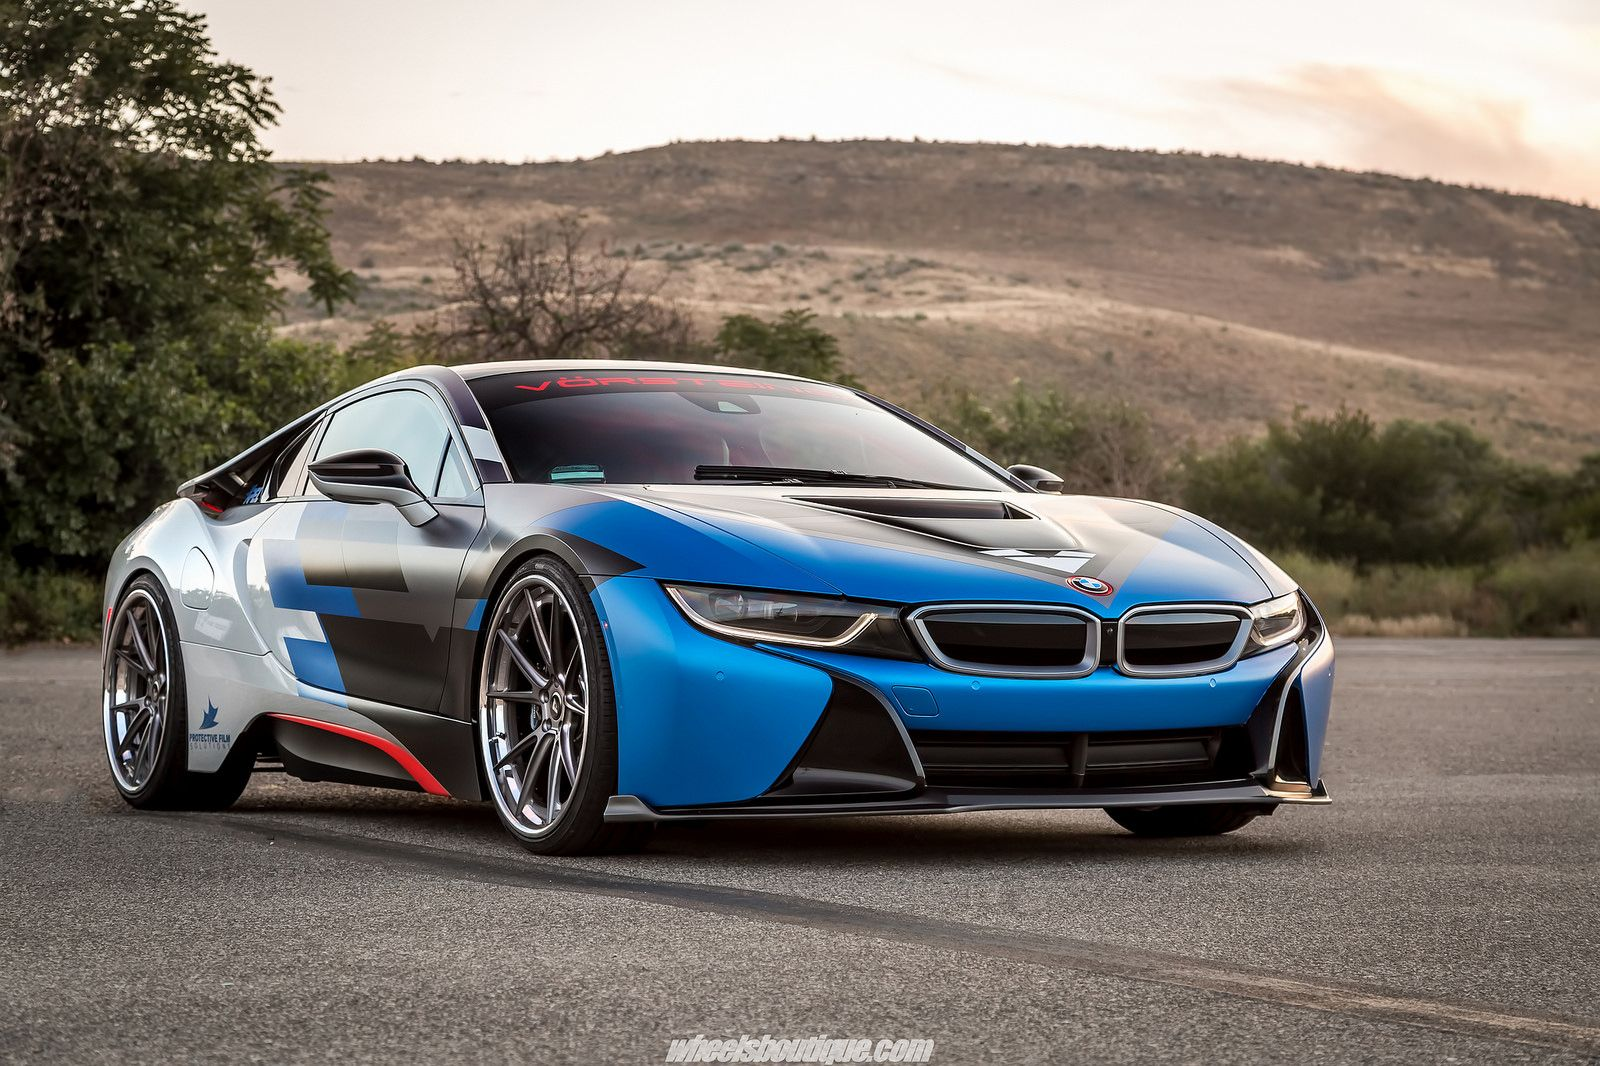 Bmw I8 S Galore X Wheels Boutique I8 Pinterest Bmw Bmw I8 And